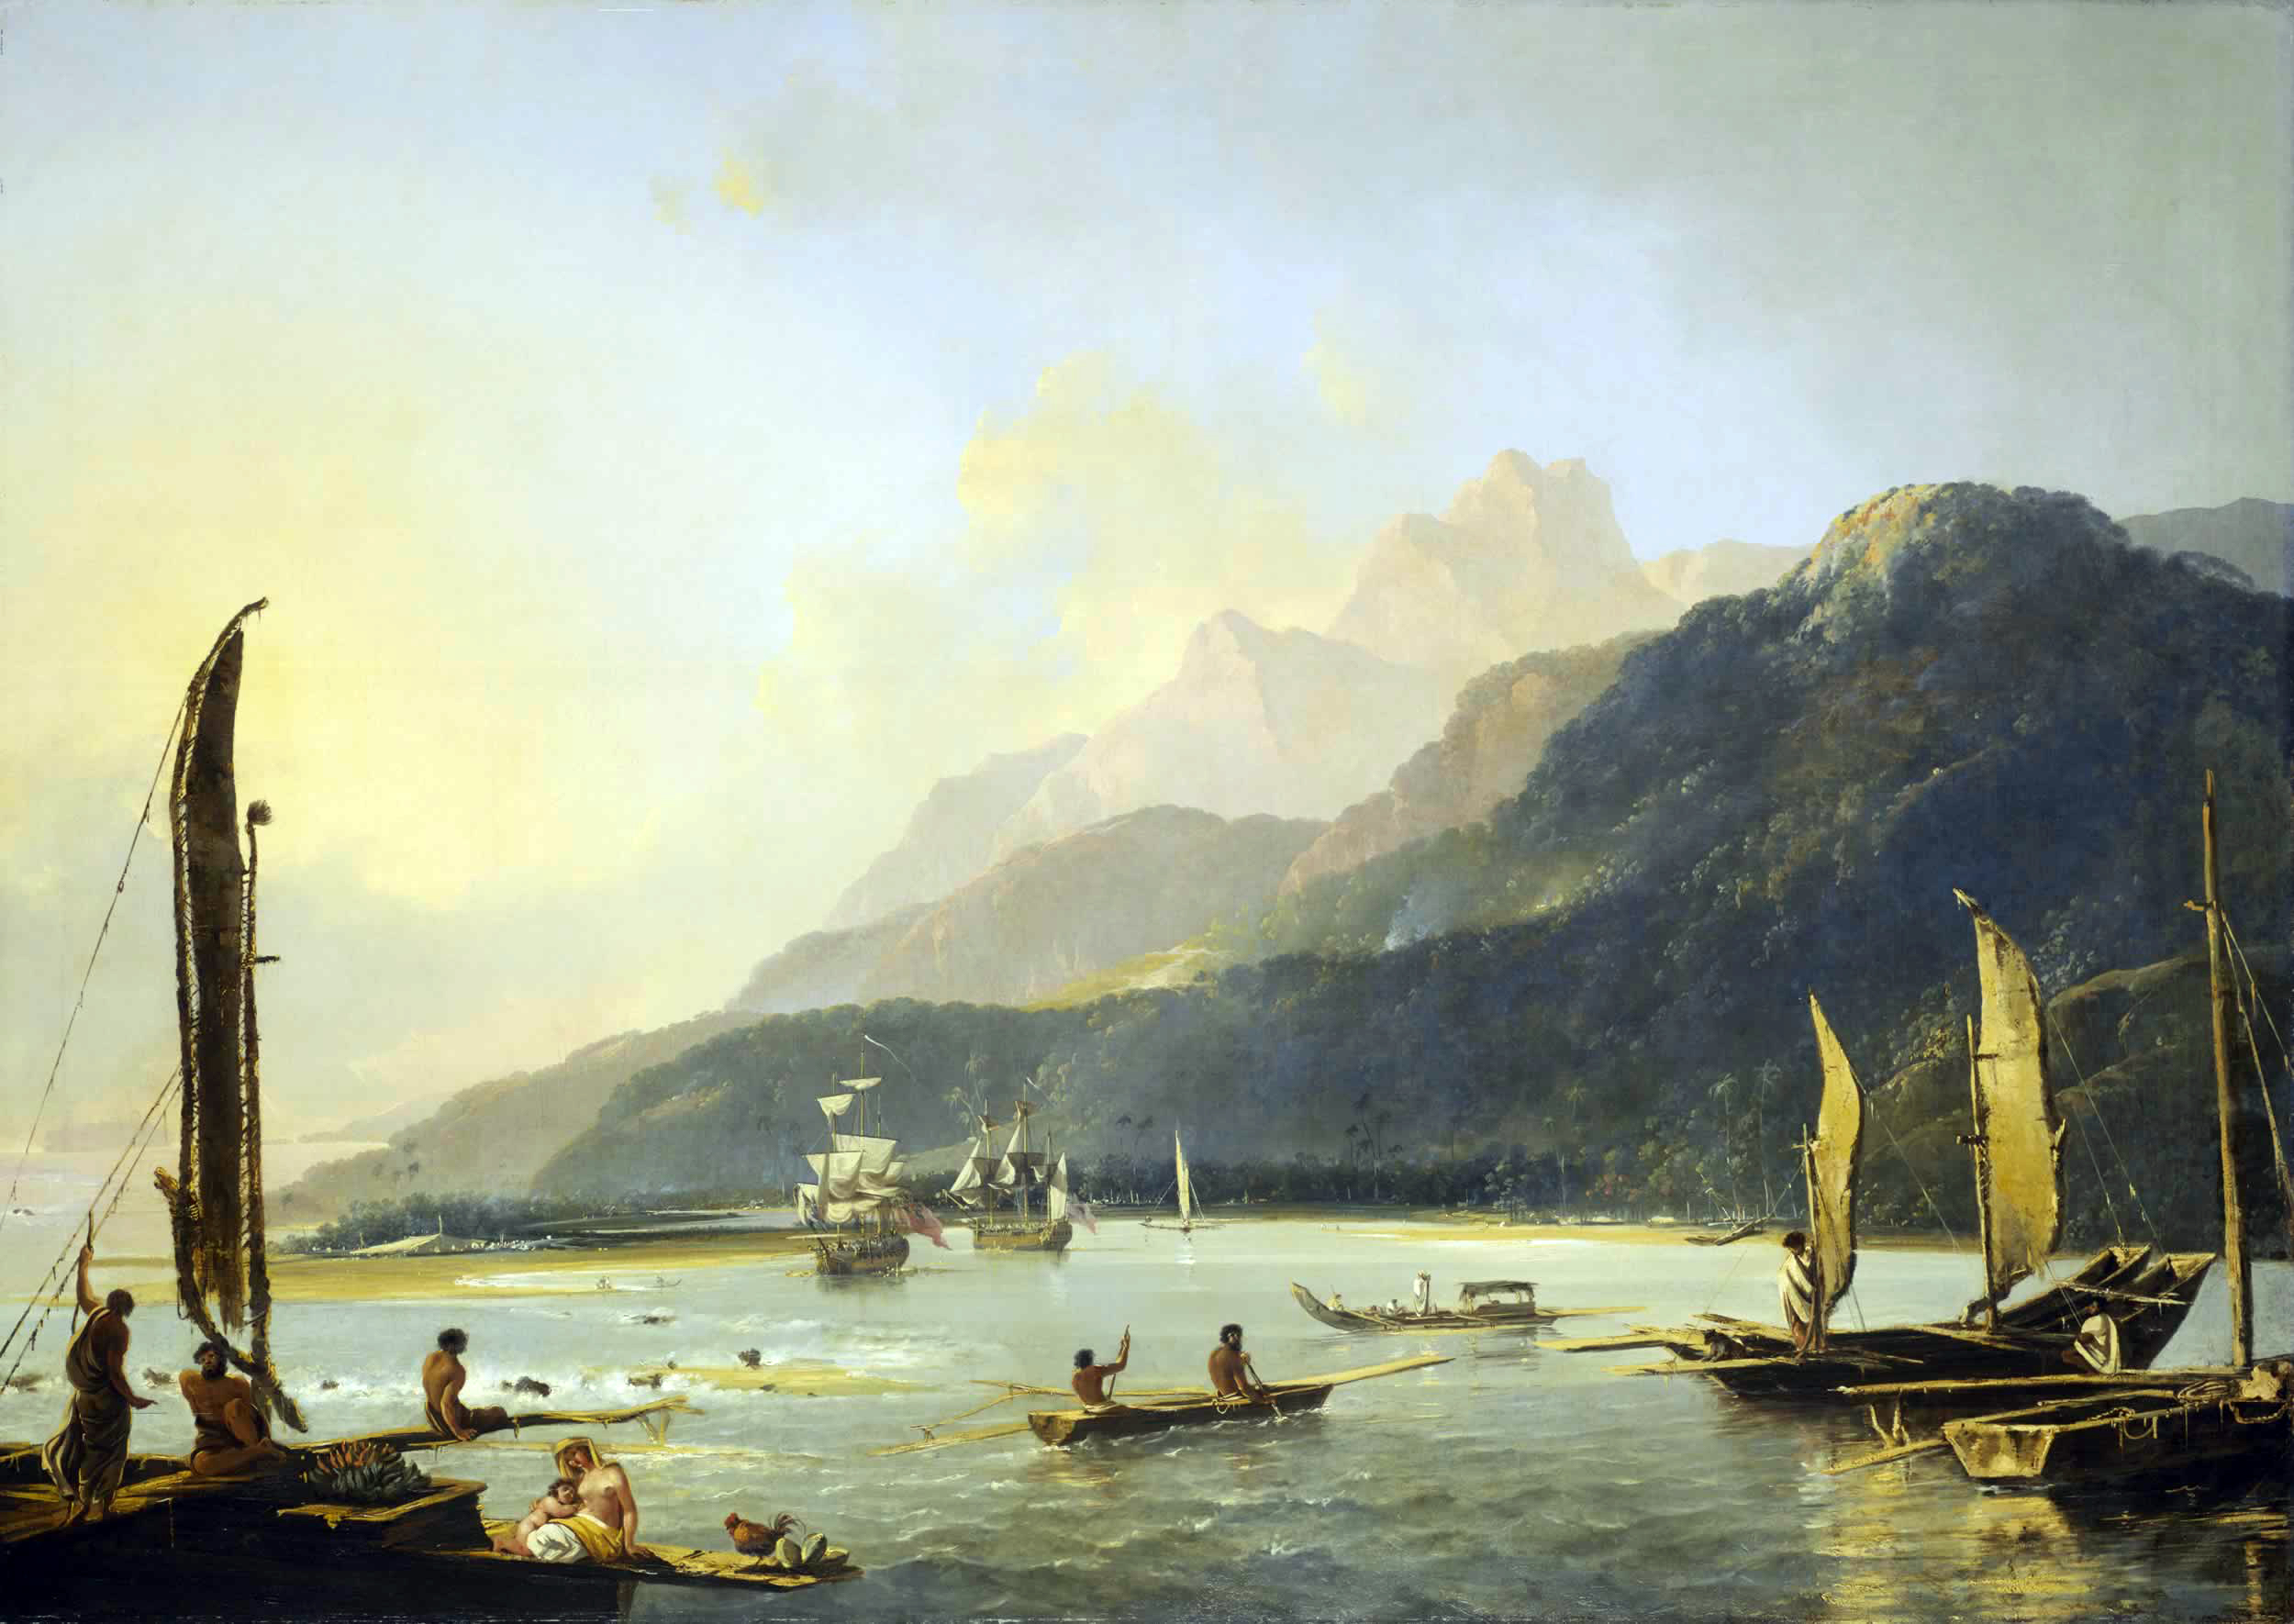 Resolution and Adventure with fishing craft in Matavai Bay, painted by William Hodges in 1776, shows the two ships of Commander James Cook's second voyage of exploration in the Pacific at anchor in Tahiti. Oil on canvas, currently at Royal Museums Greenwich, England.